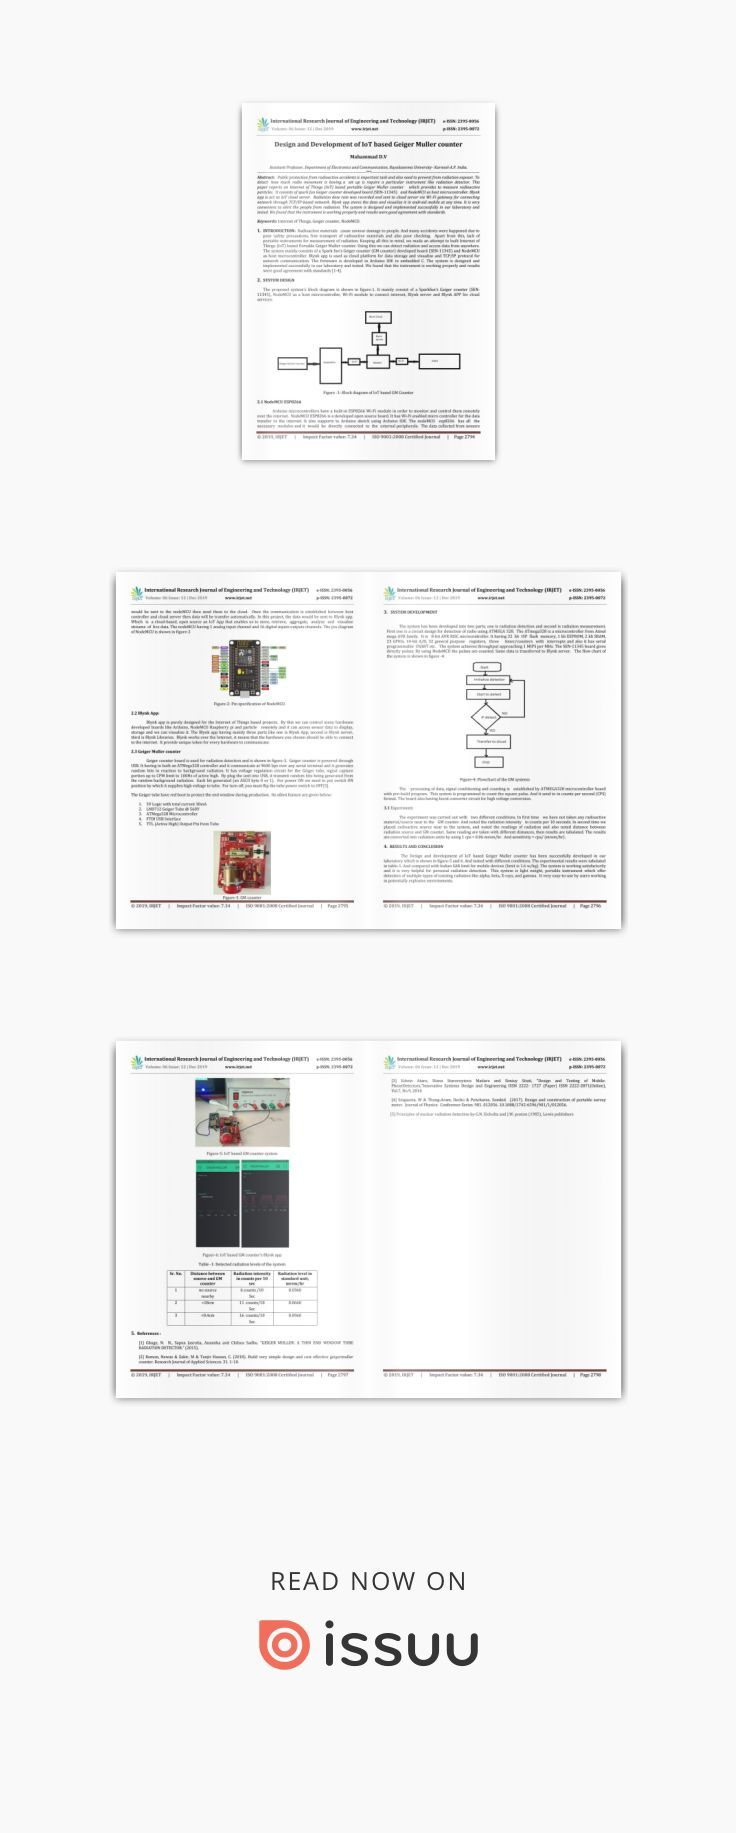 Irjet Design And Development Of Iot Based Geiger Muller Counter In 2020 Iot Radiation Dose Circuit Design